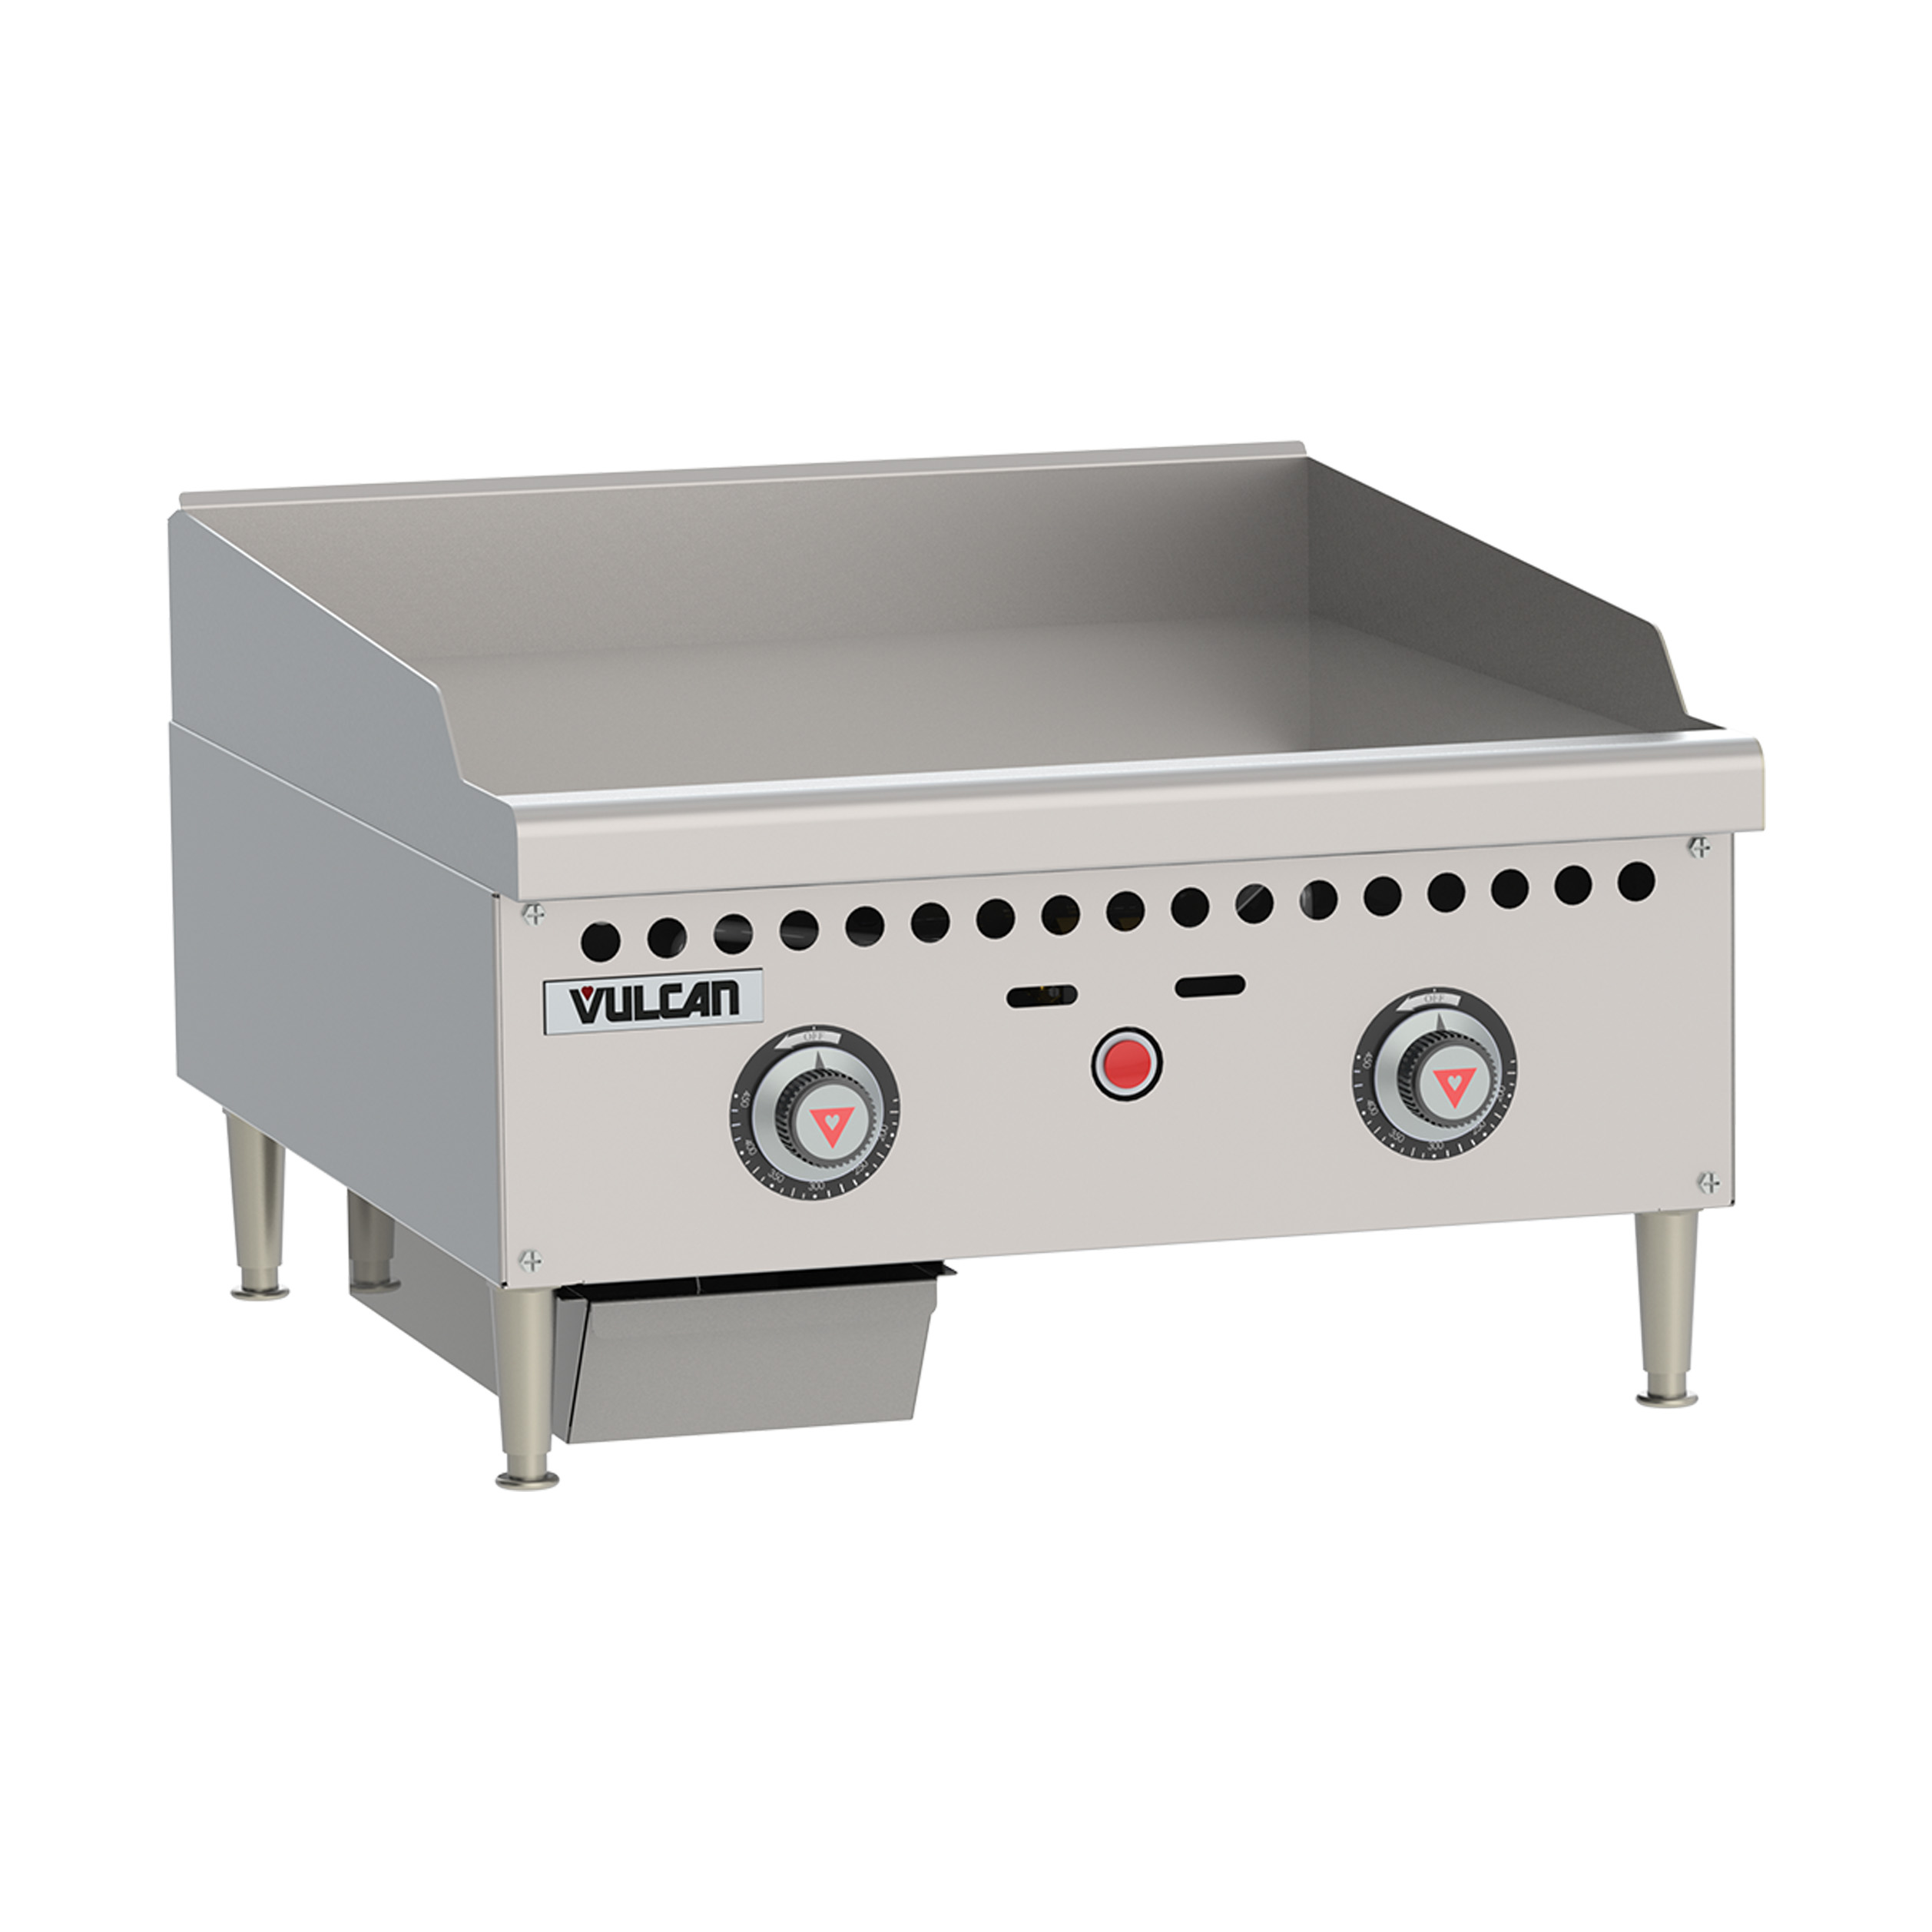 Vulcan VCRG24-T griddle, gas, countertop